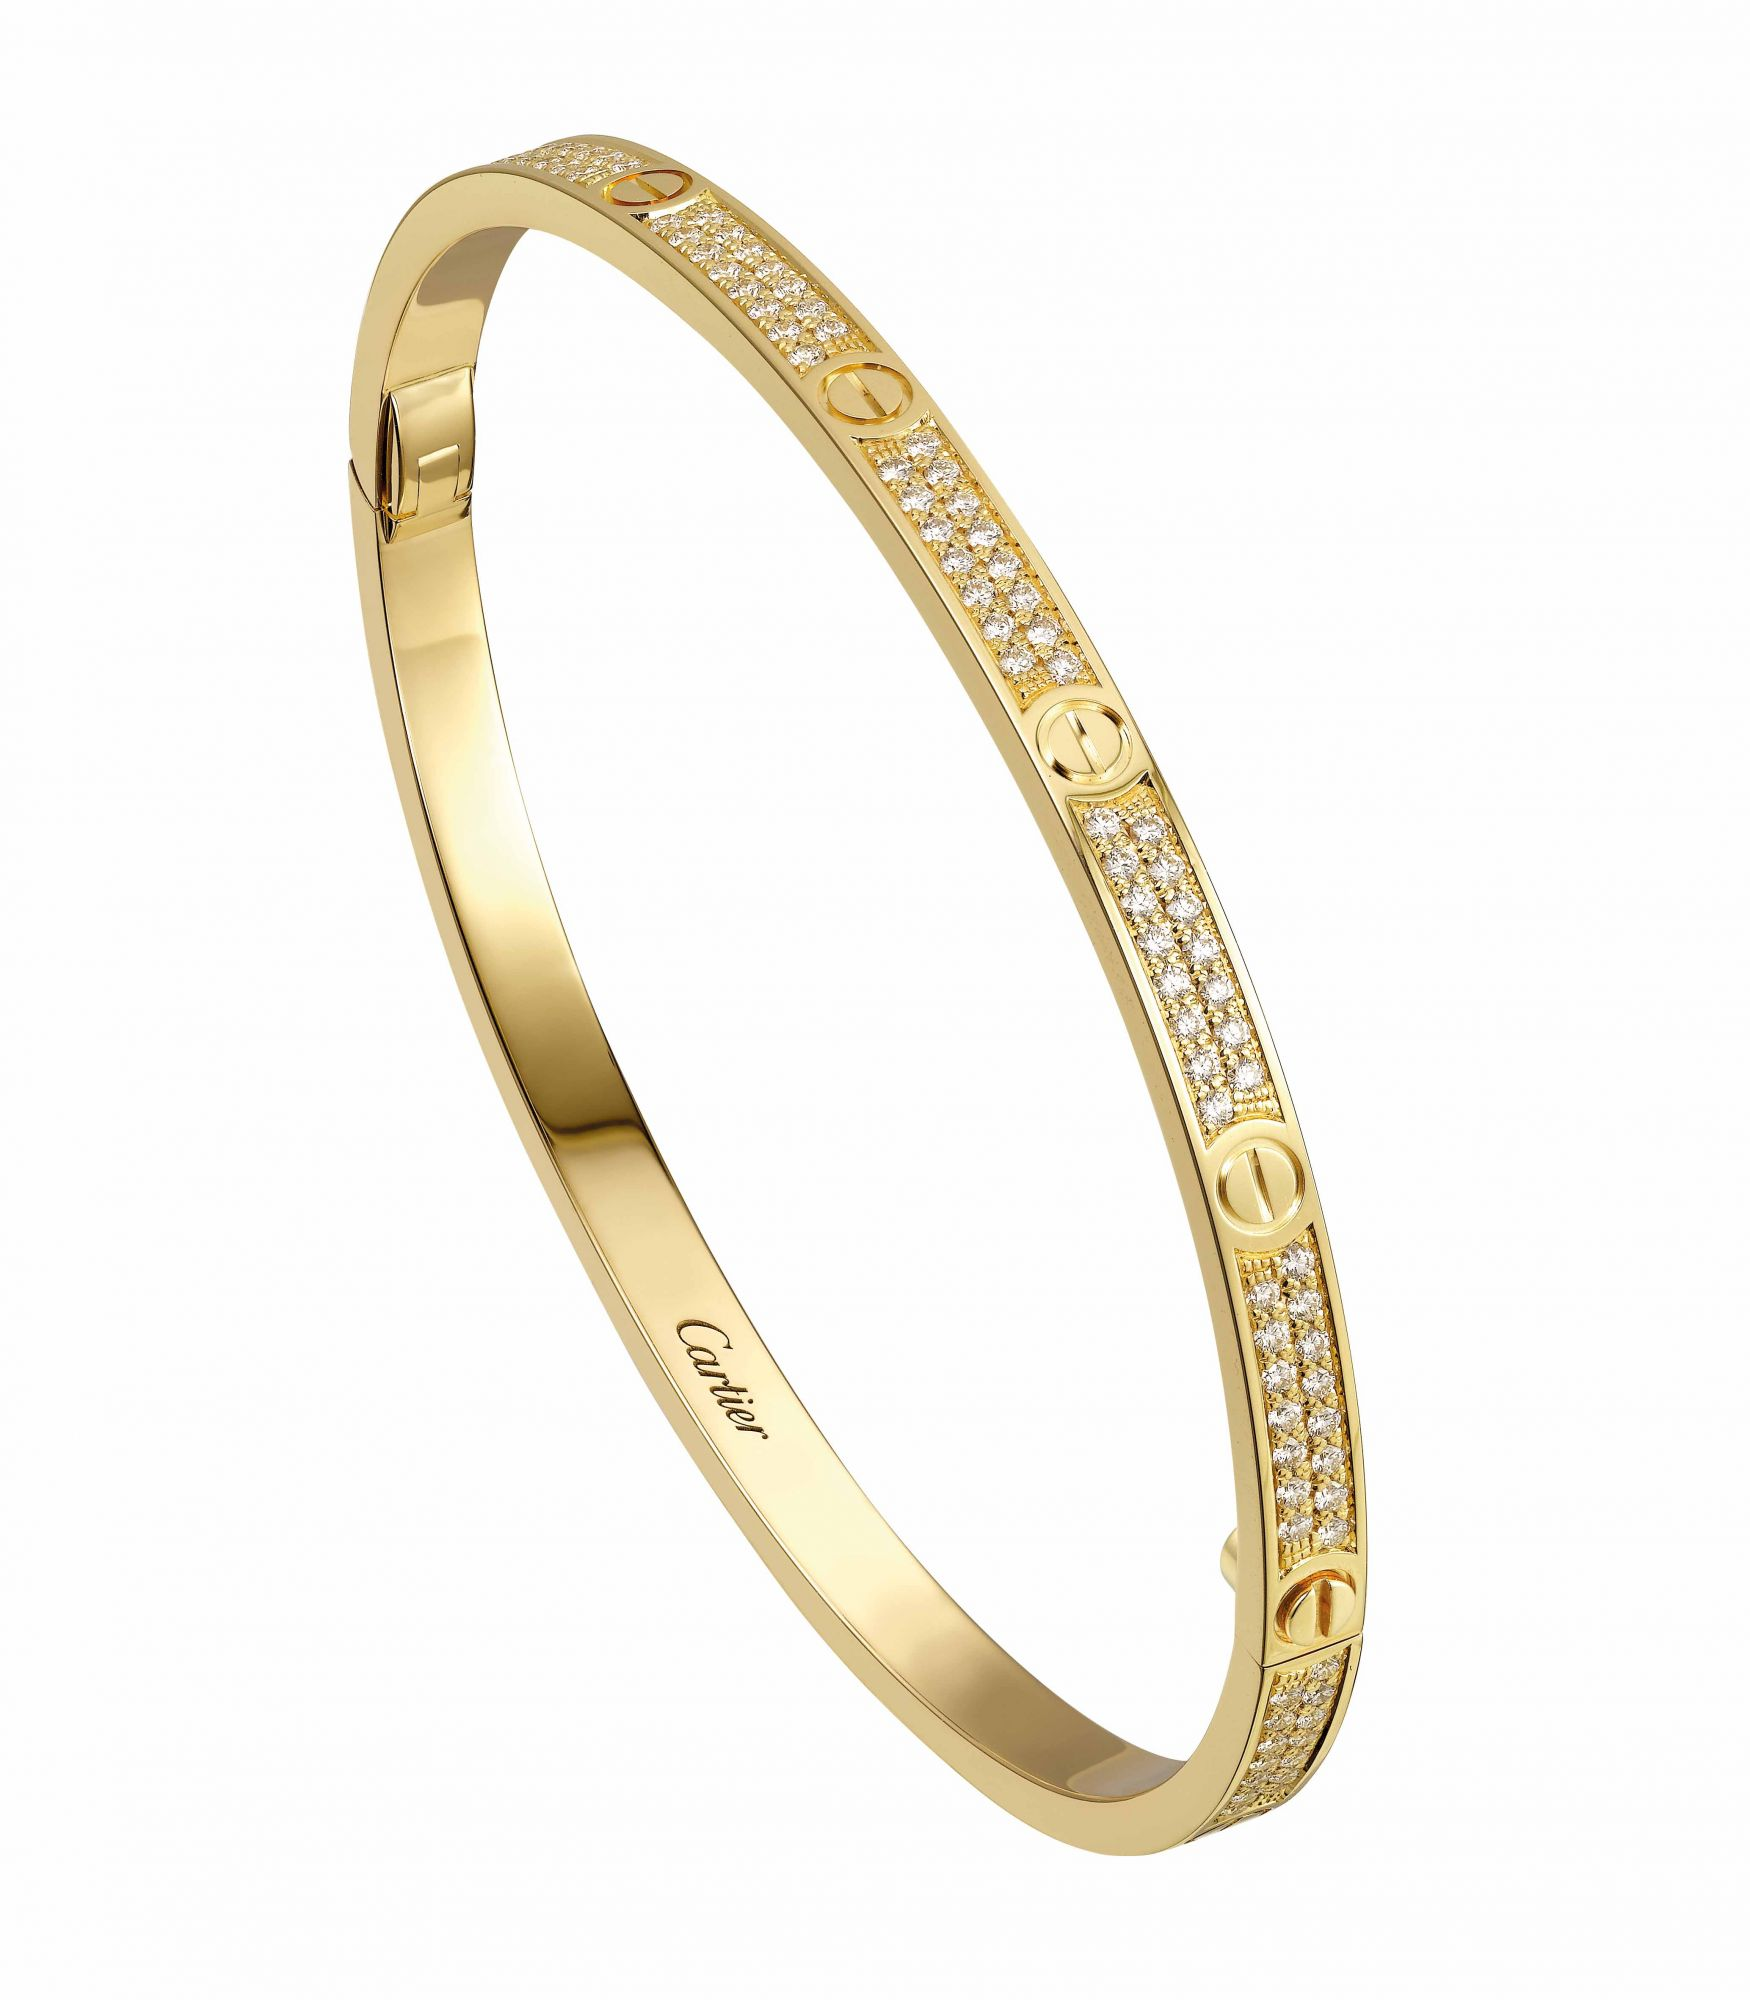 bangles bracelet id cartier yellow love gold j bangle bracelets size at z org jewelry